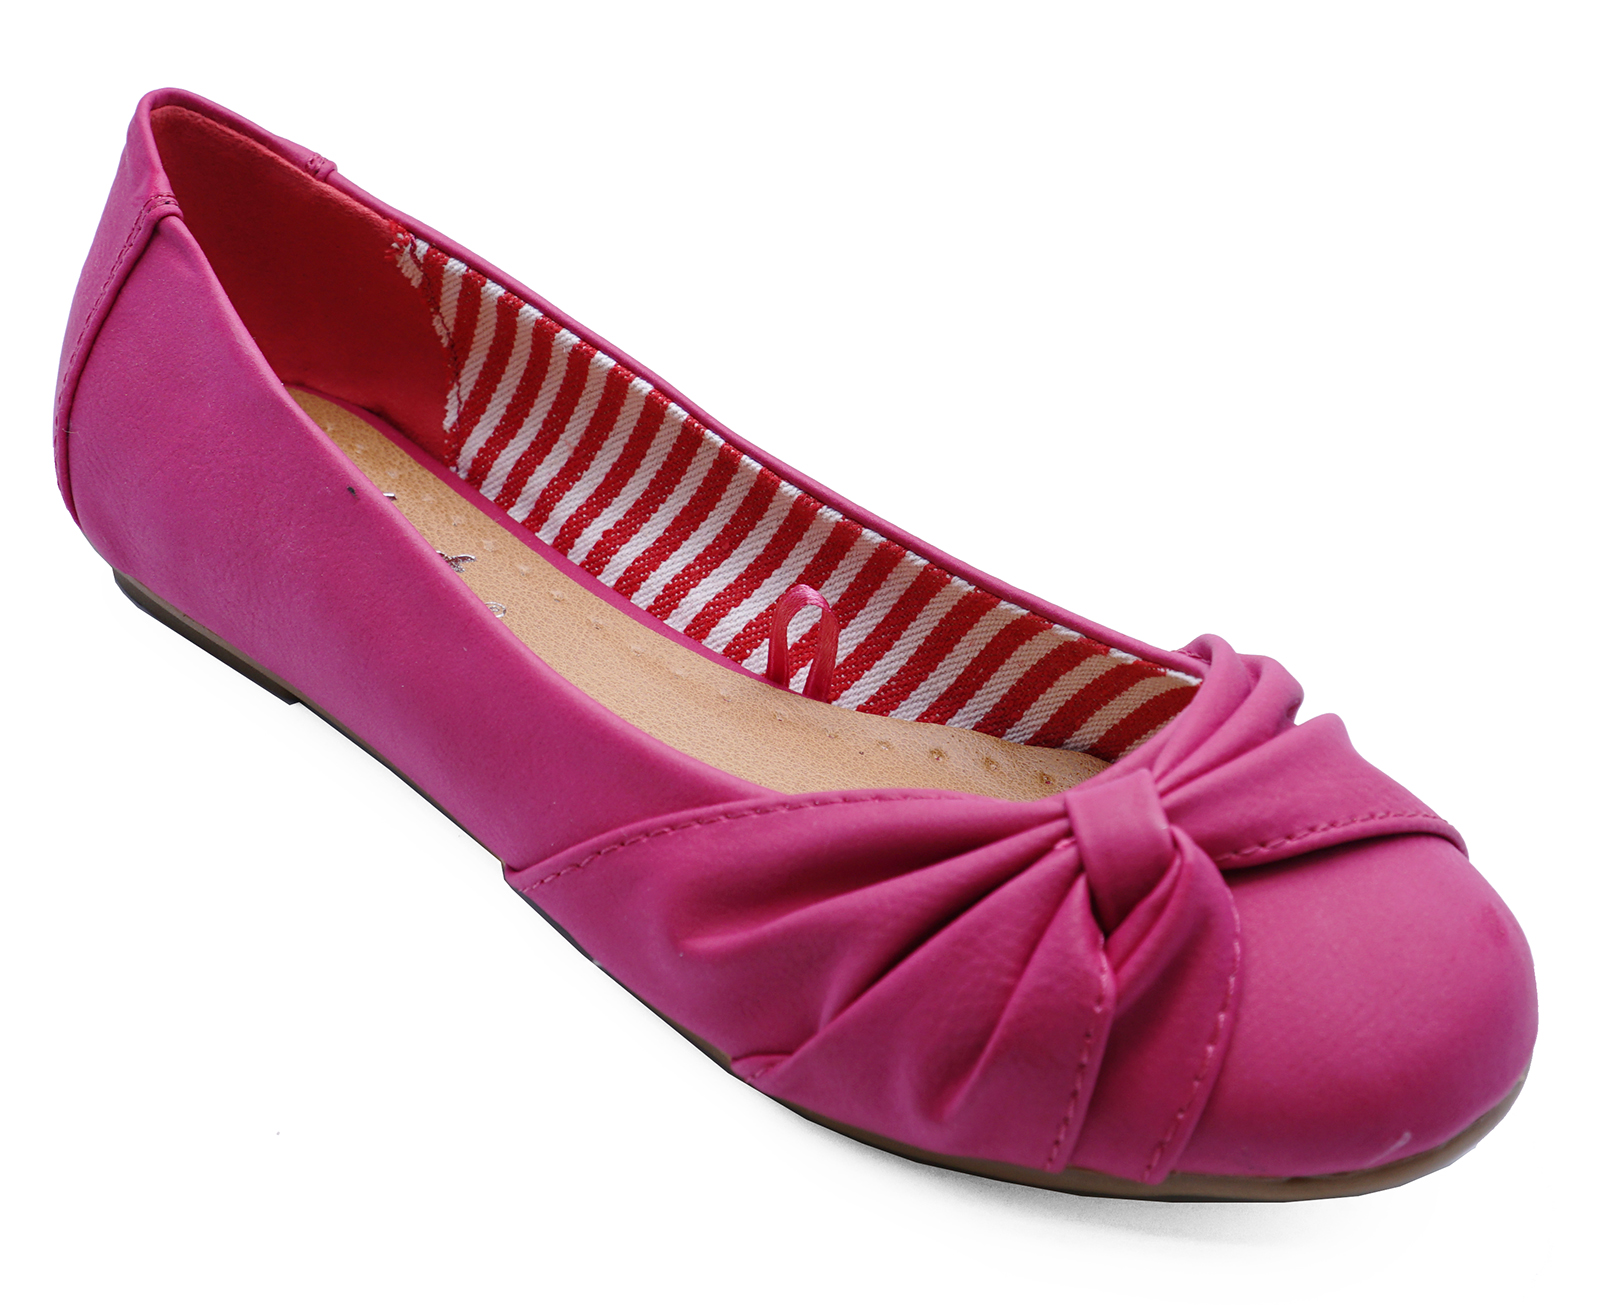 Comfy Casual on Ballet Work Pink Slip Flat 8 2 Pumps Ladies Dolly Sizes Shoes Hq8TnCZxXw